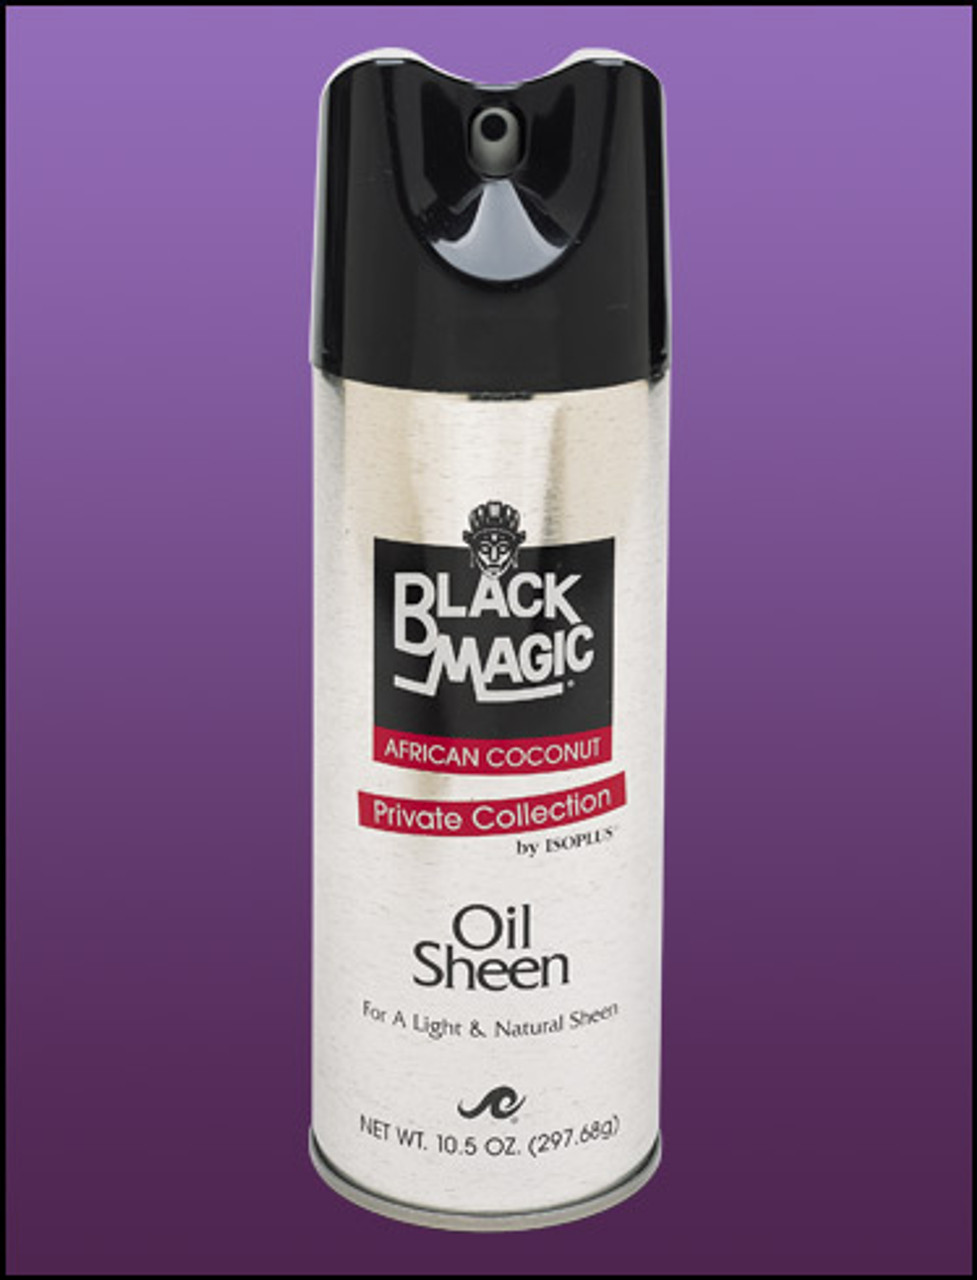 Black Magic Oil Sheen